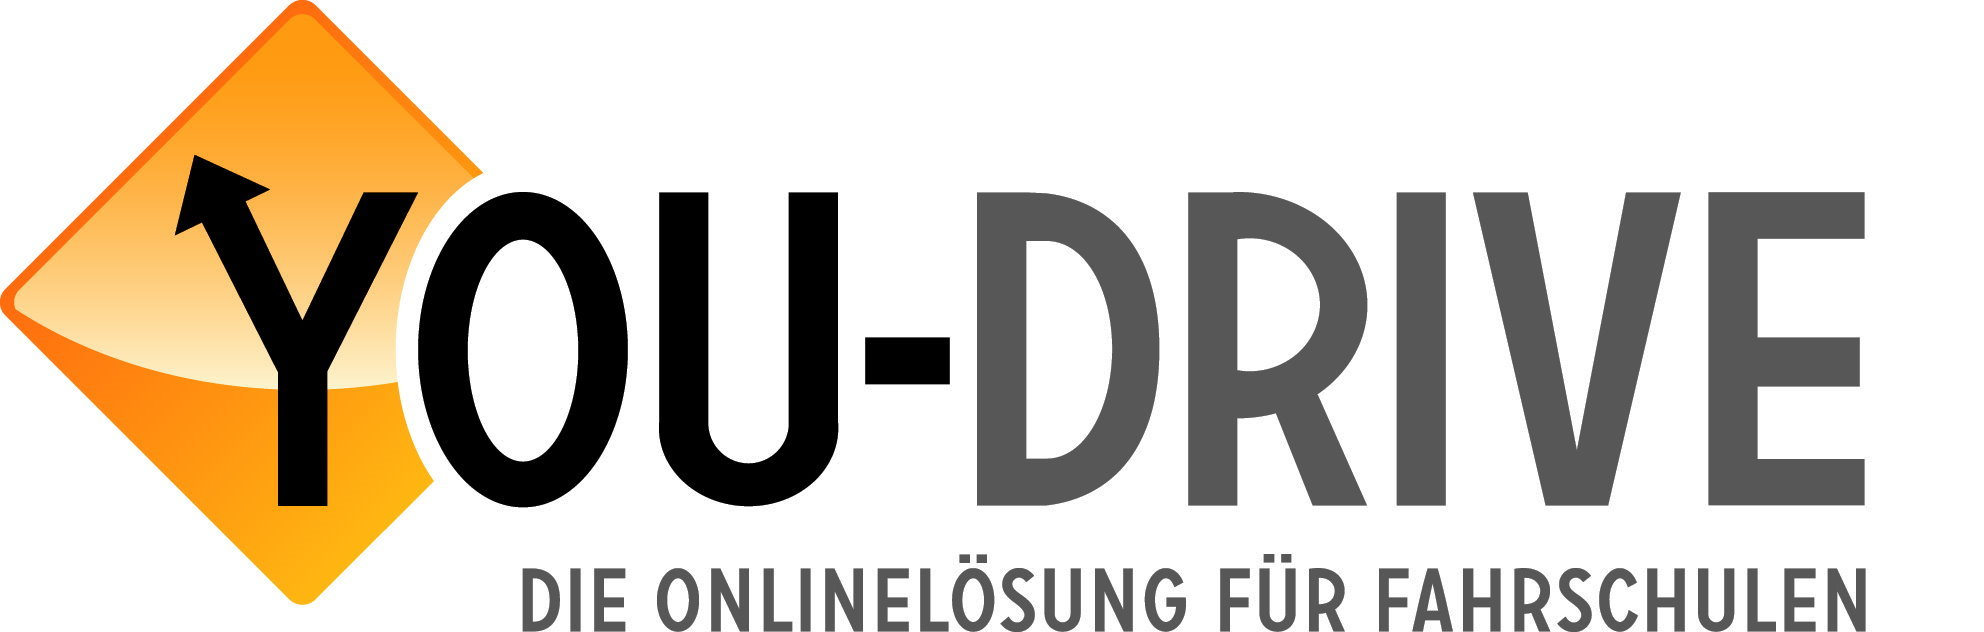 Verlinkt zu https://you-drive.de/